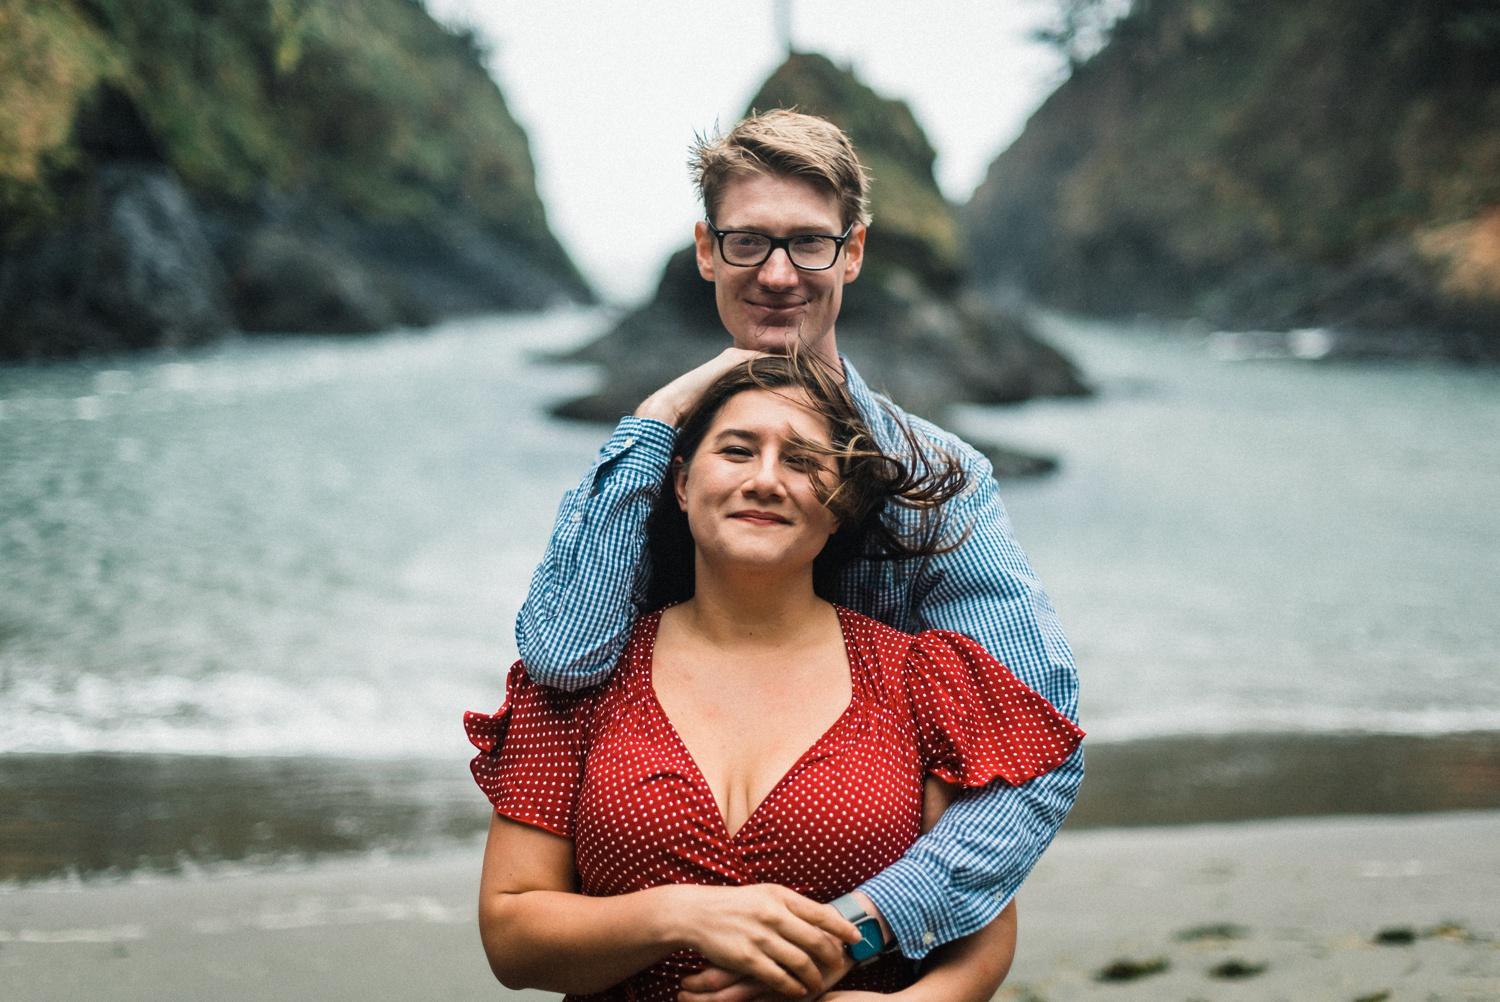 Cape_Disappointment_Engagment_Kailey_Alex_The_Foxes_Photography_072.jpg